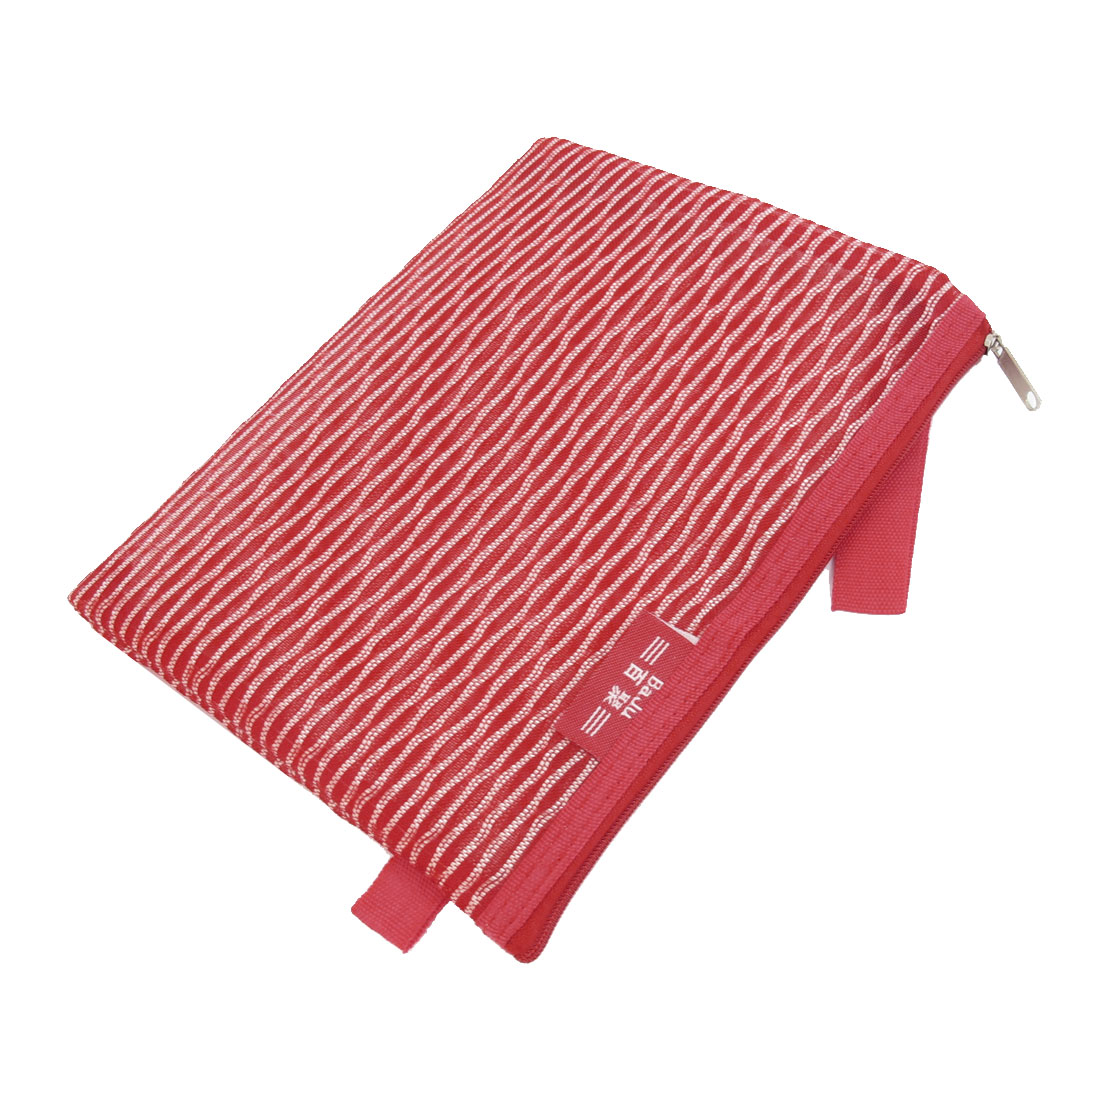 Zip Up Gridding A5 Paper Pen Pencil File Case Bag Holder Red